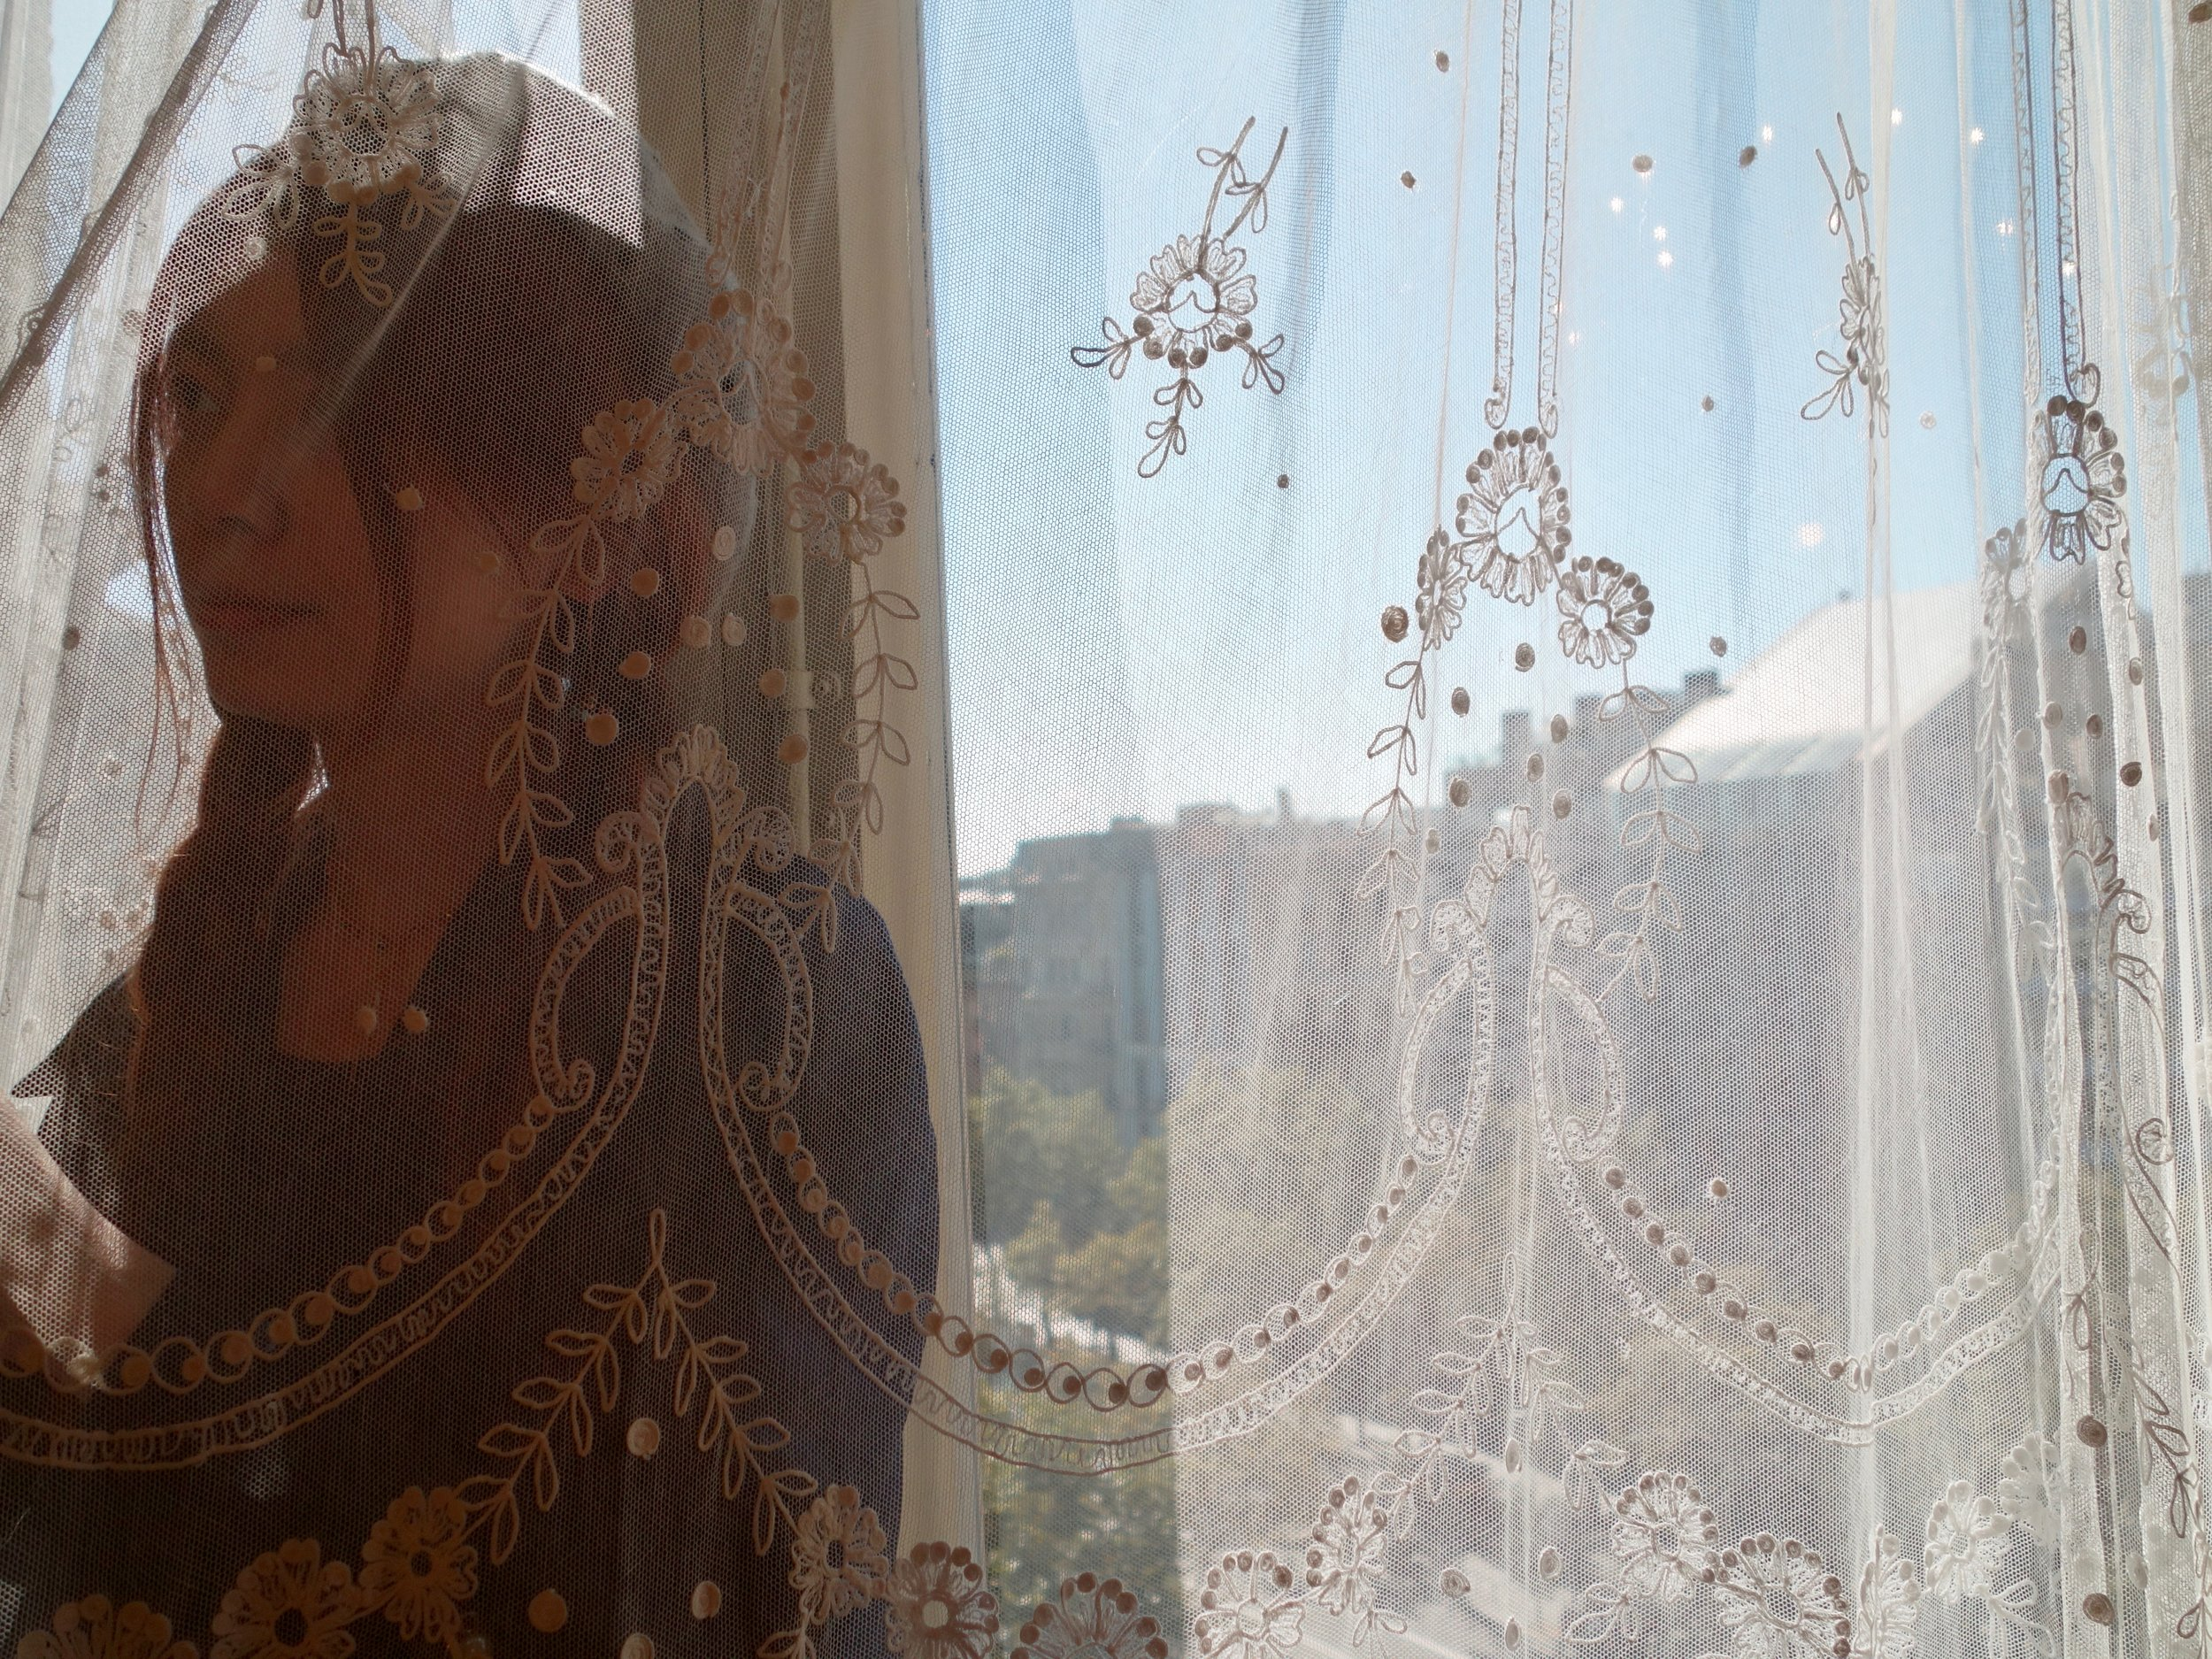 Woman Behind Lace Curtain in Gaudi Apartment.jpg